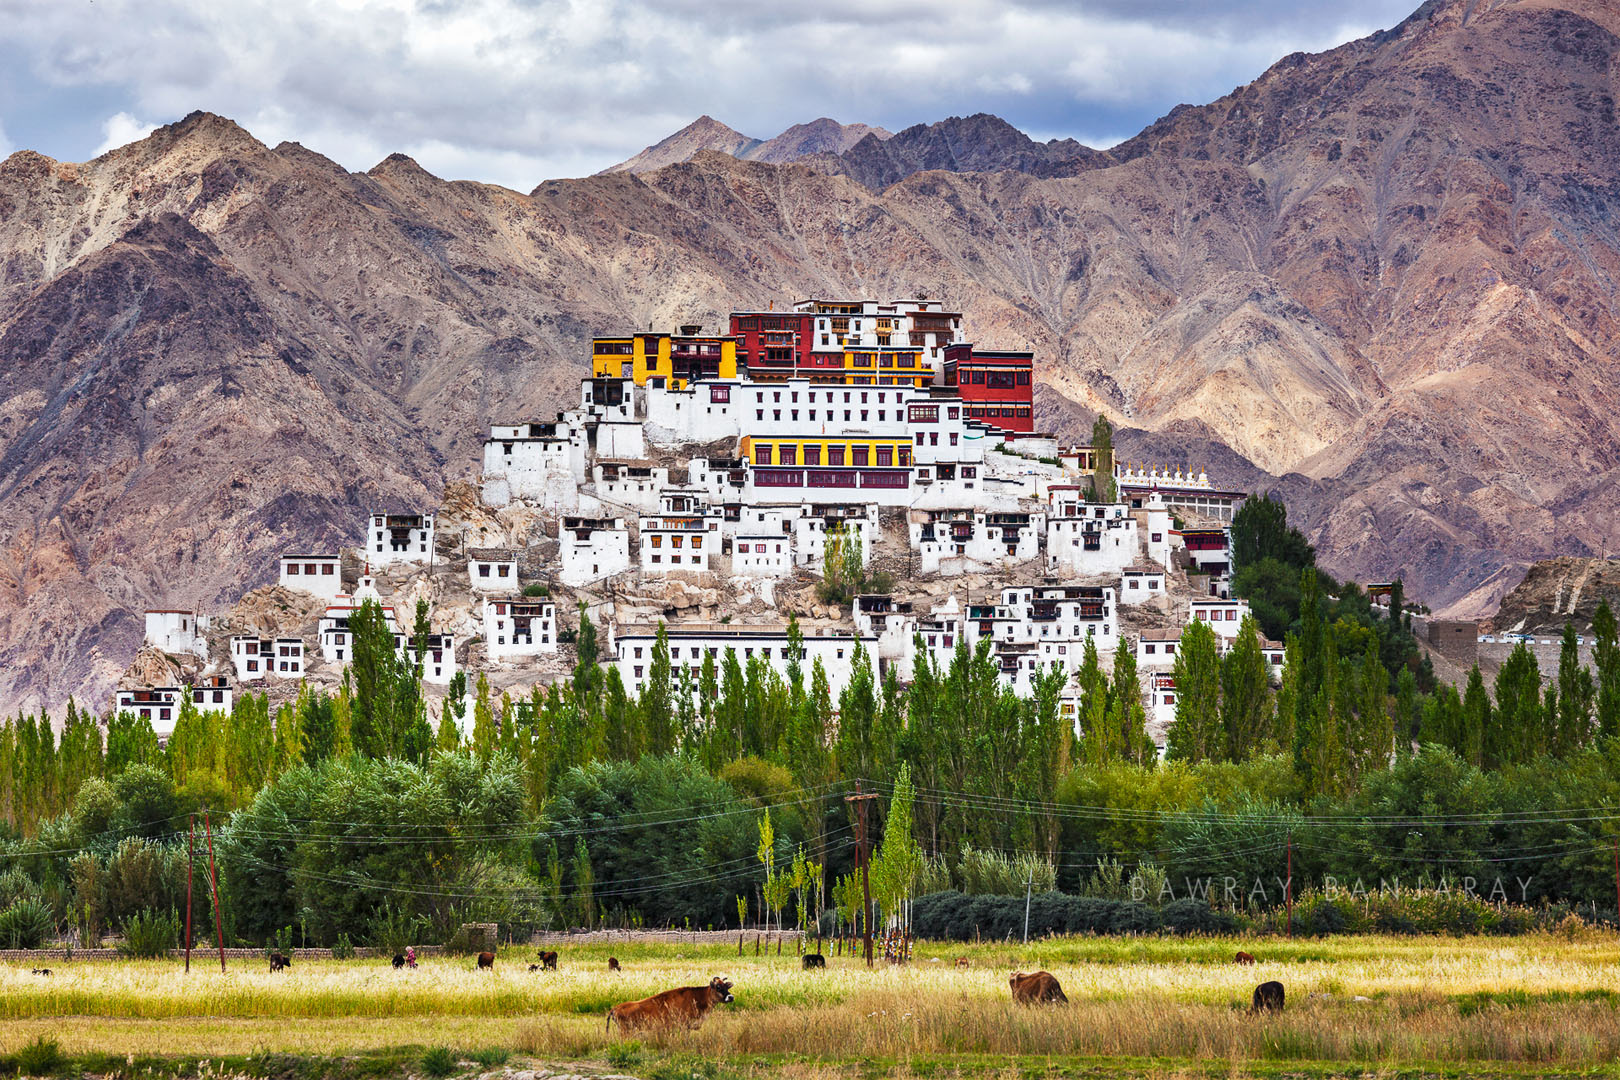 Thiksey Monastery is one of the largest monasteries in Lsadakh